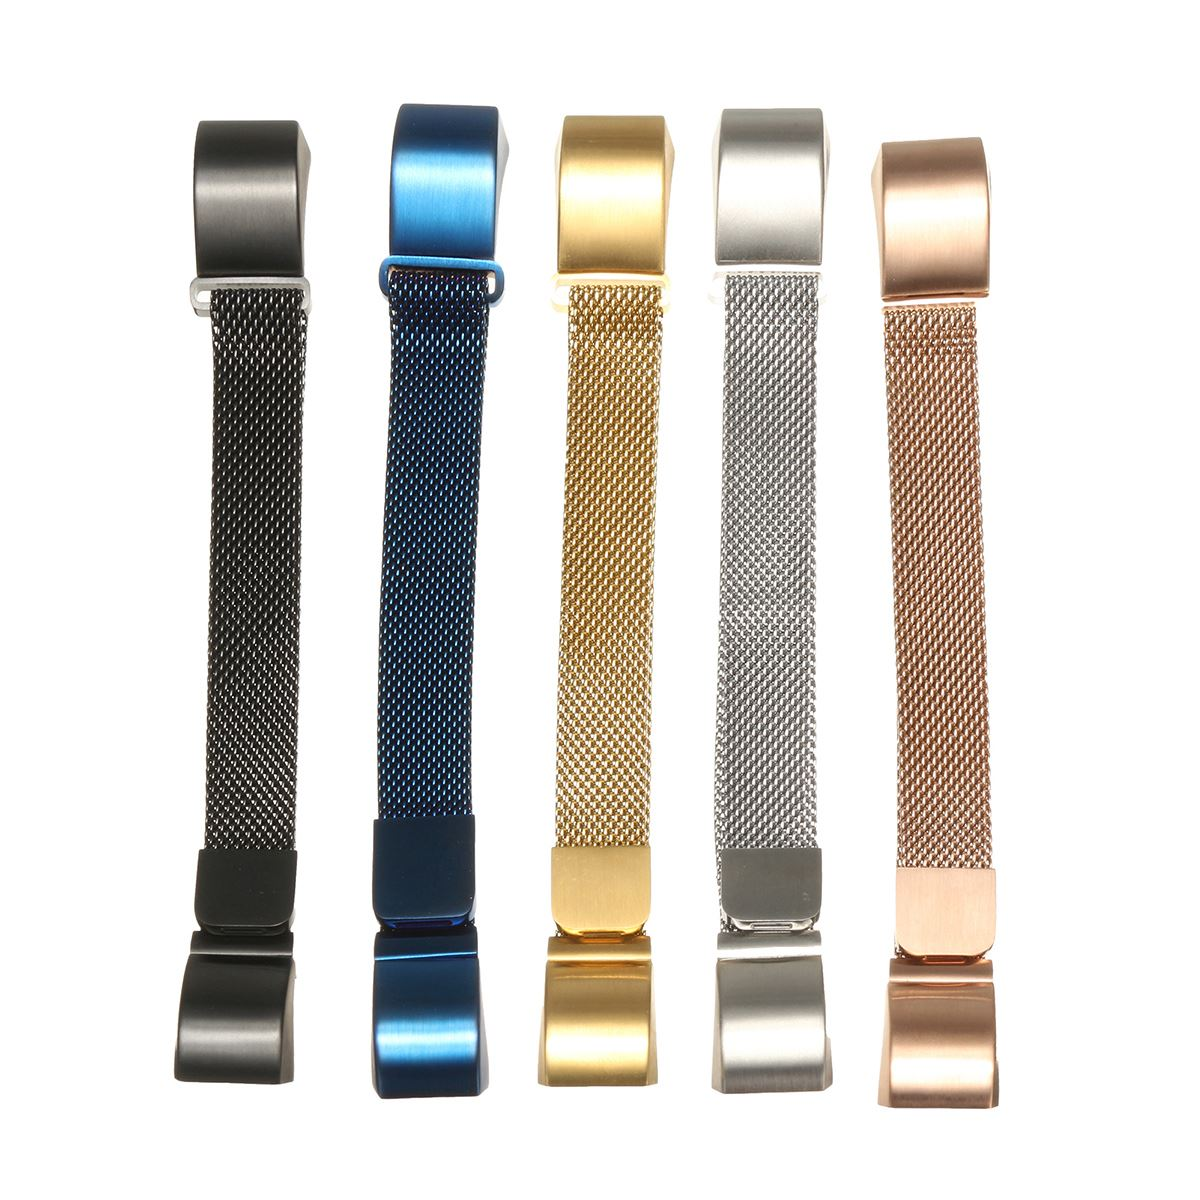 Luxury Milanese Loop Magnetic Stailess Steel Wrist WatchBand Strap + Frame Casual Watch Colorful Man/Woman Watchband new for hp pavillion 587244 001 cpu cooling fan with heatsink cooler 587244 001 free shipping